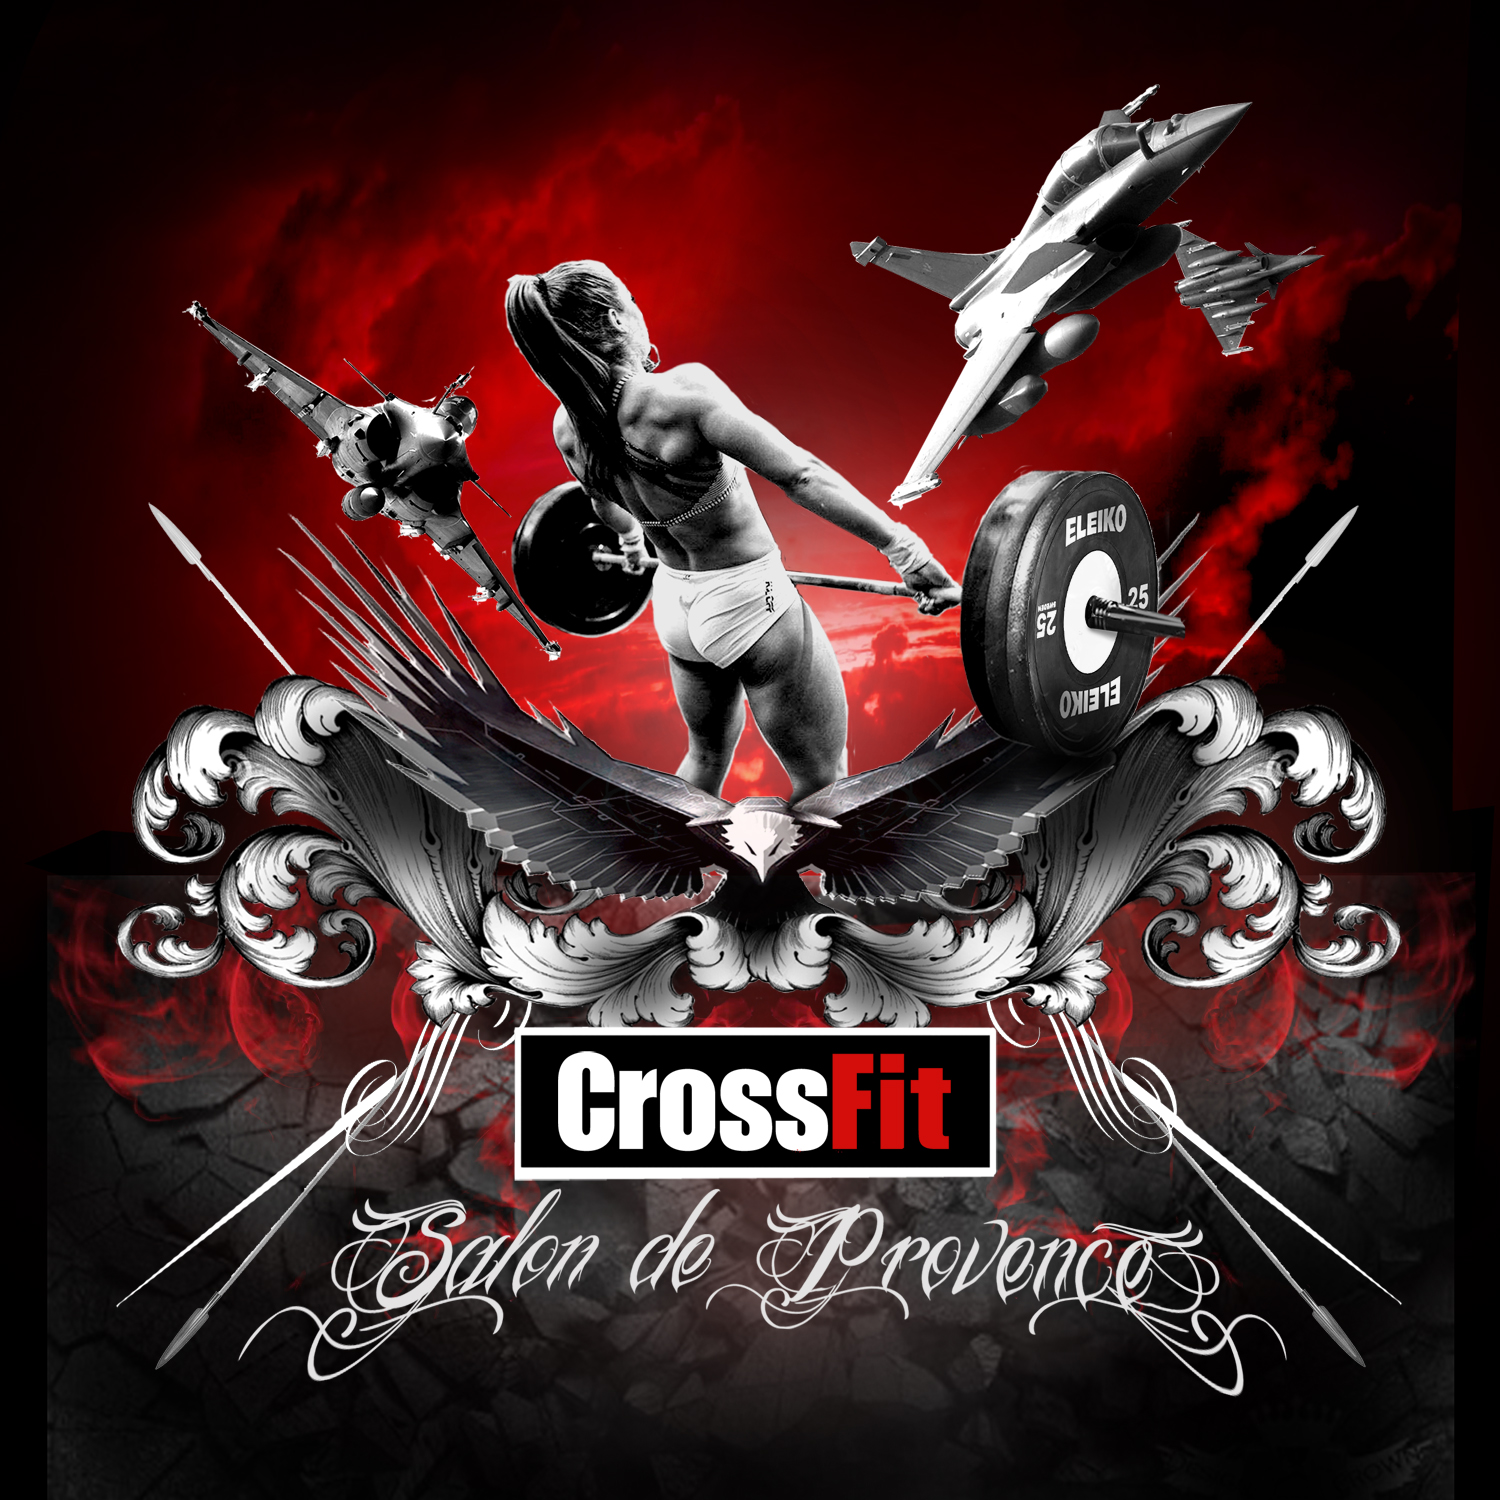 Crossfit salon de provence la french co 6 boxs de crossfit for Crossfit salon de provence